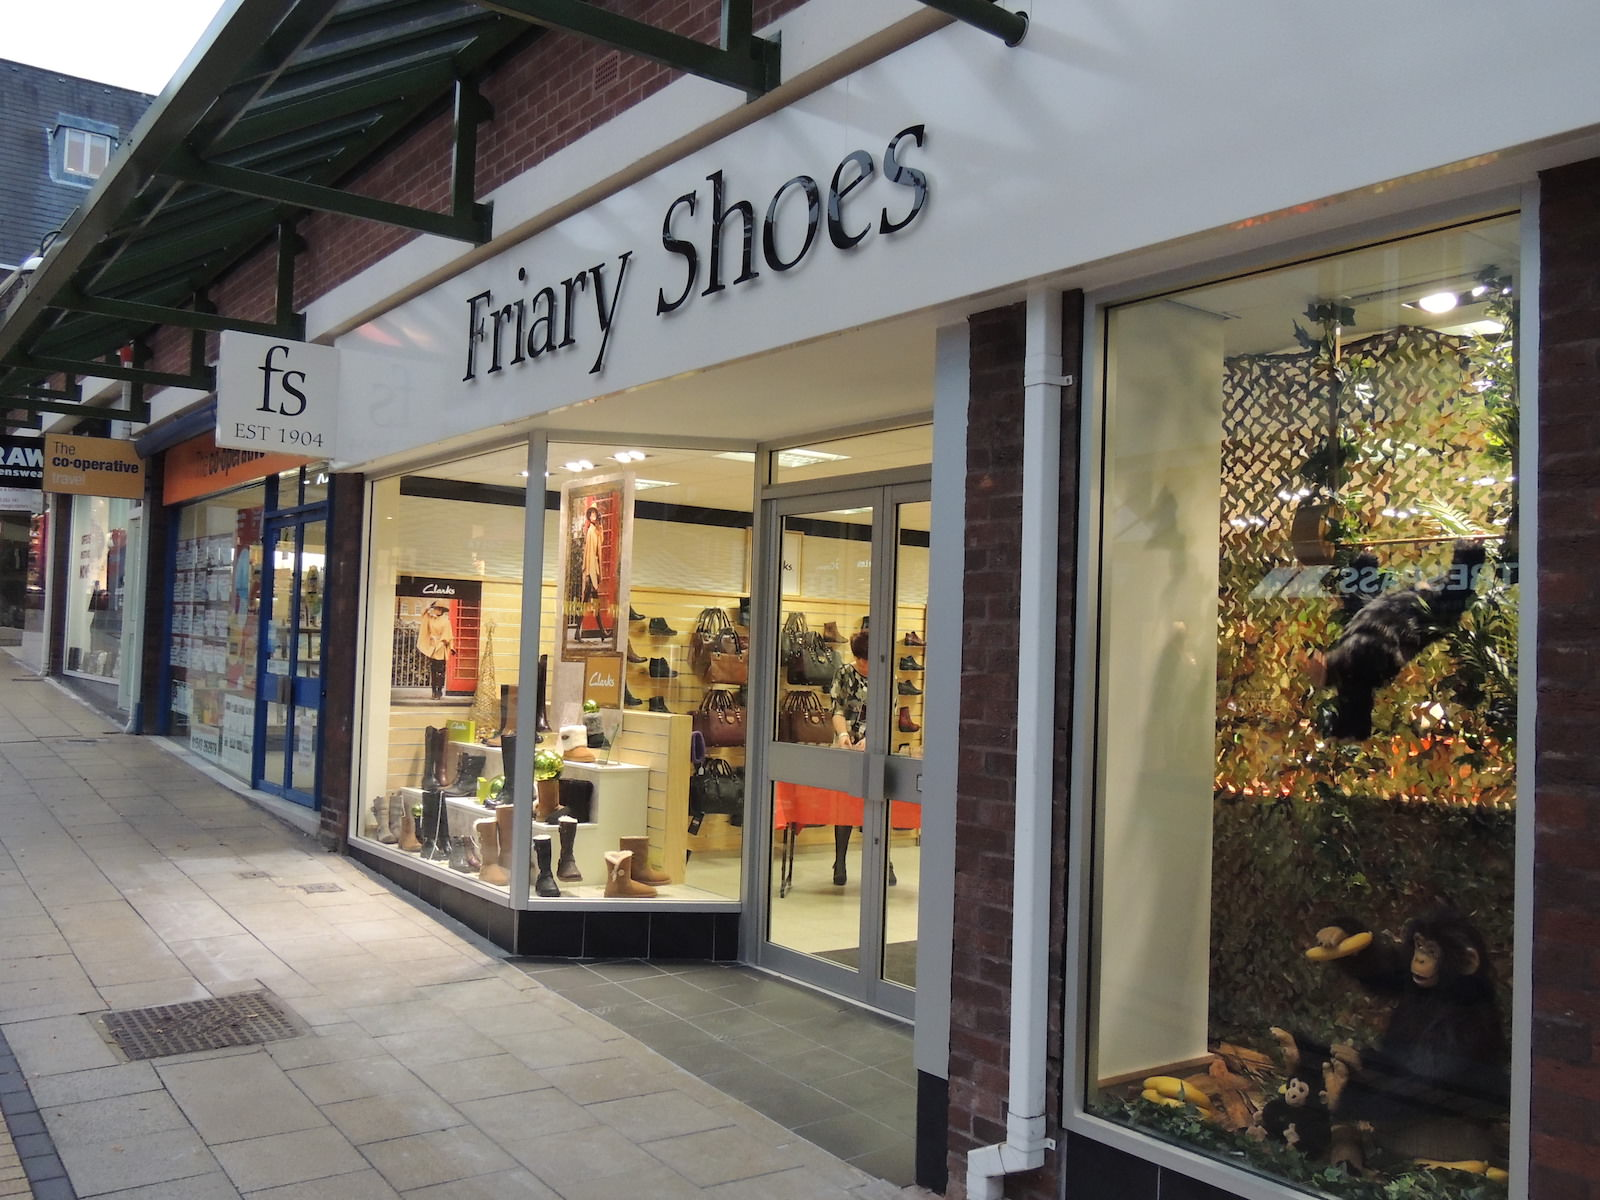 Friary Shoes